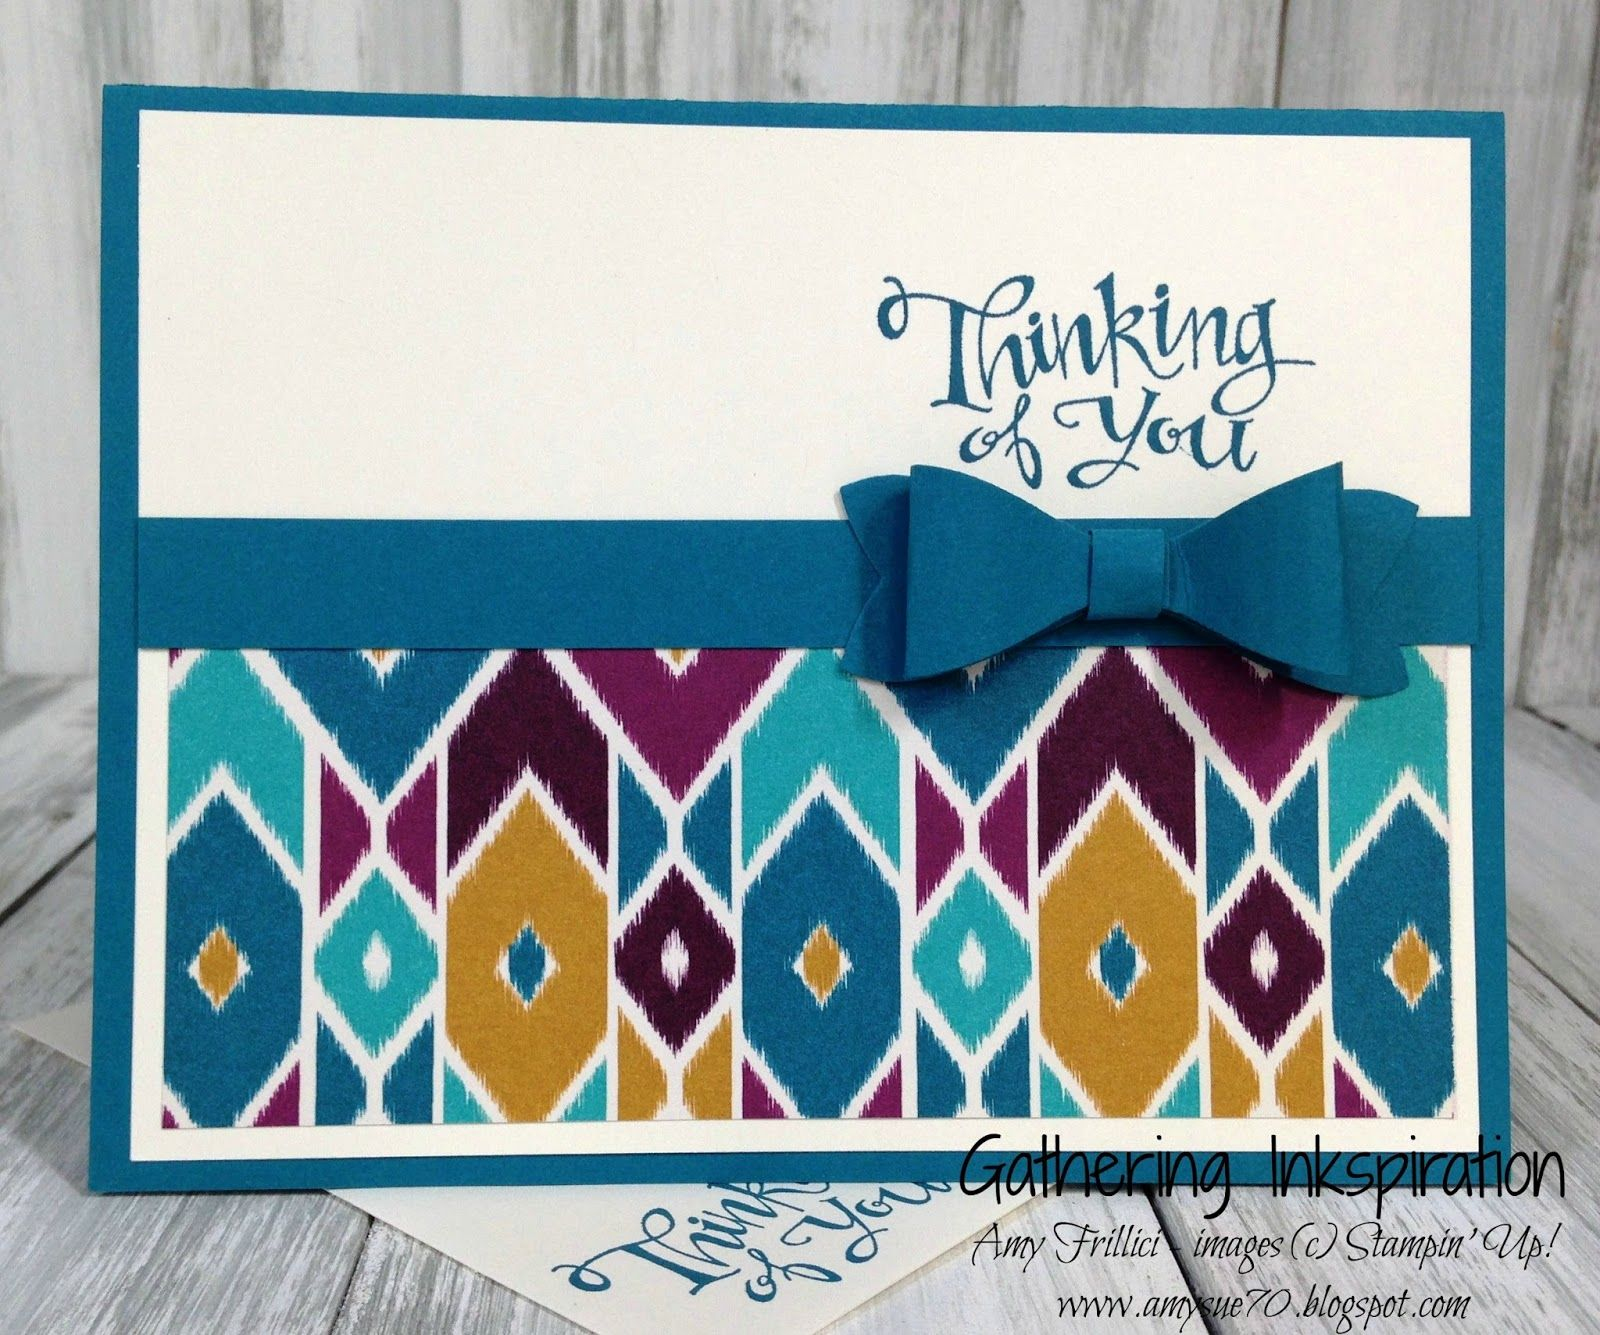 handmade greeting card, thinking of you, bold pattern, paper bow, DIY, demonstrator, paper crafting, easy, stamping, greeting card, craft, paper, *Stampin' Up, by Amy Frillici, Gathering Inkspiration Stamp Studio, order products online at amysuzanne.stampinup.net